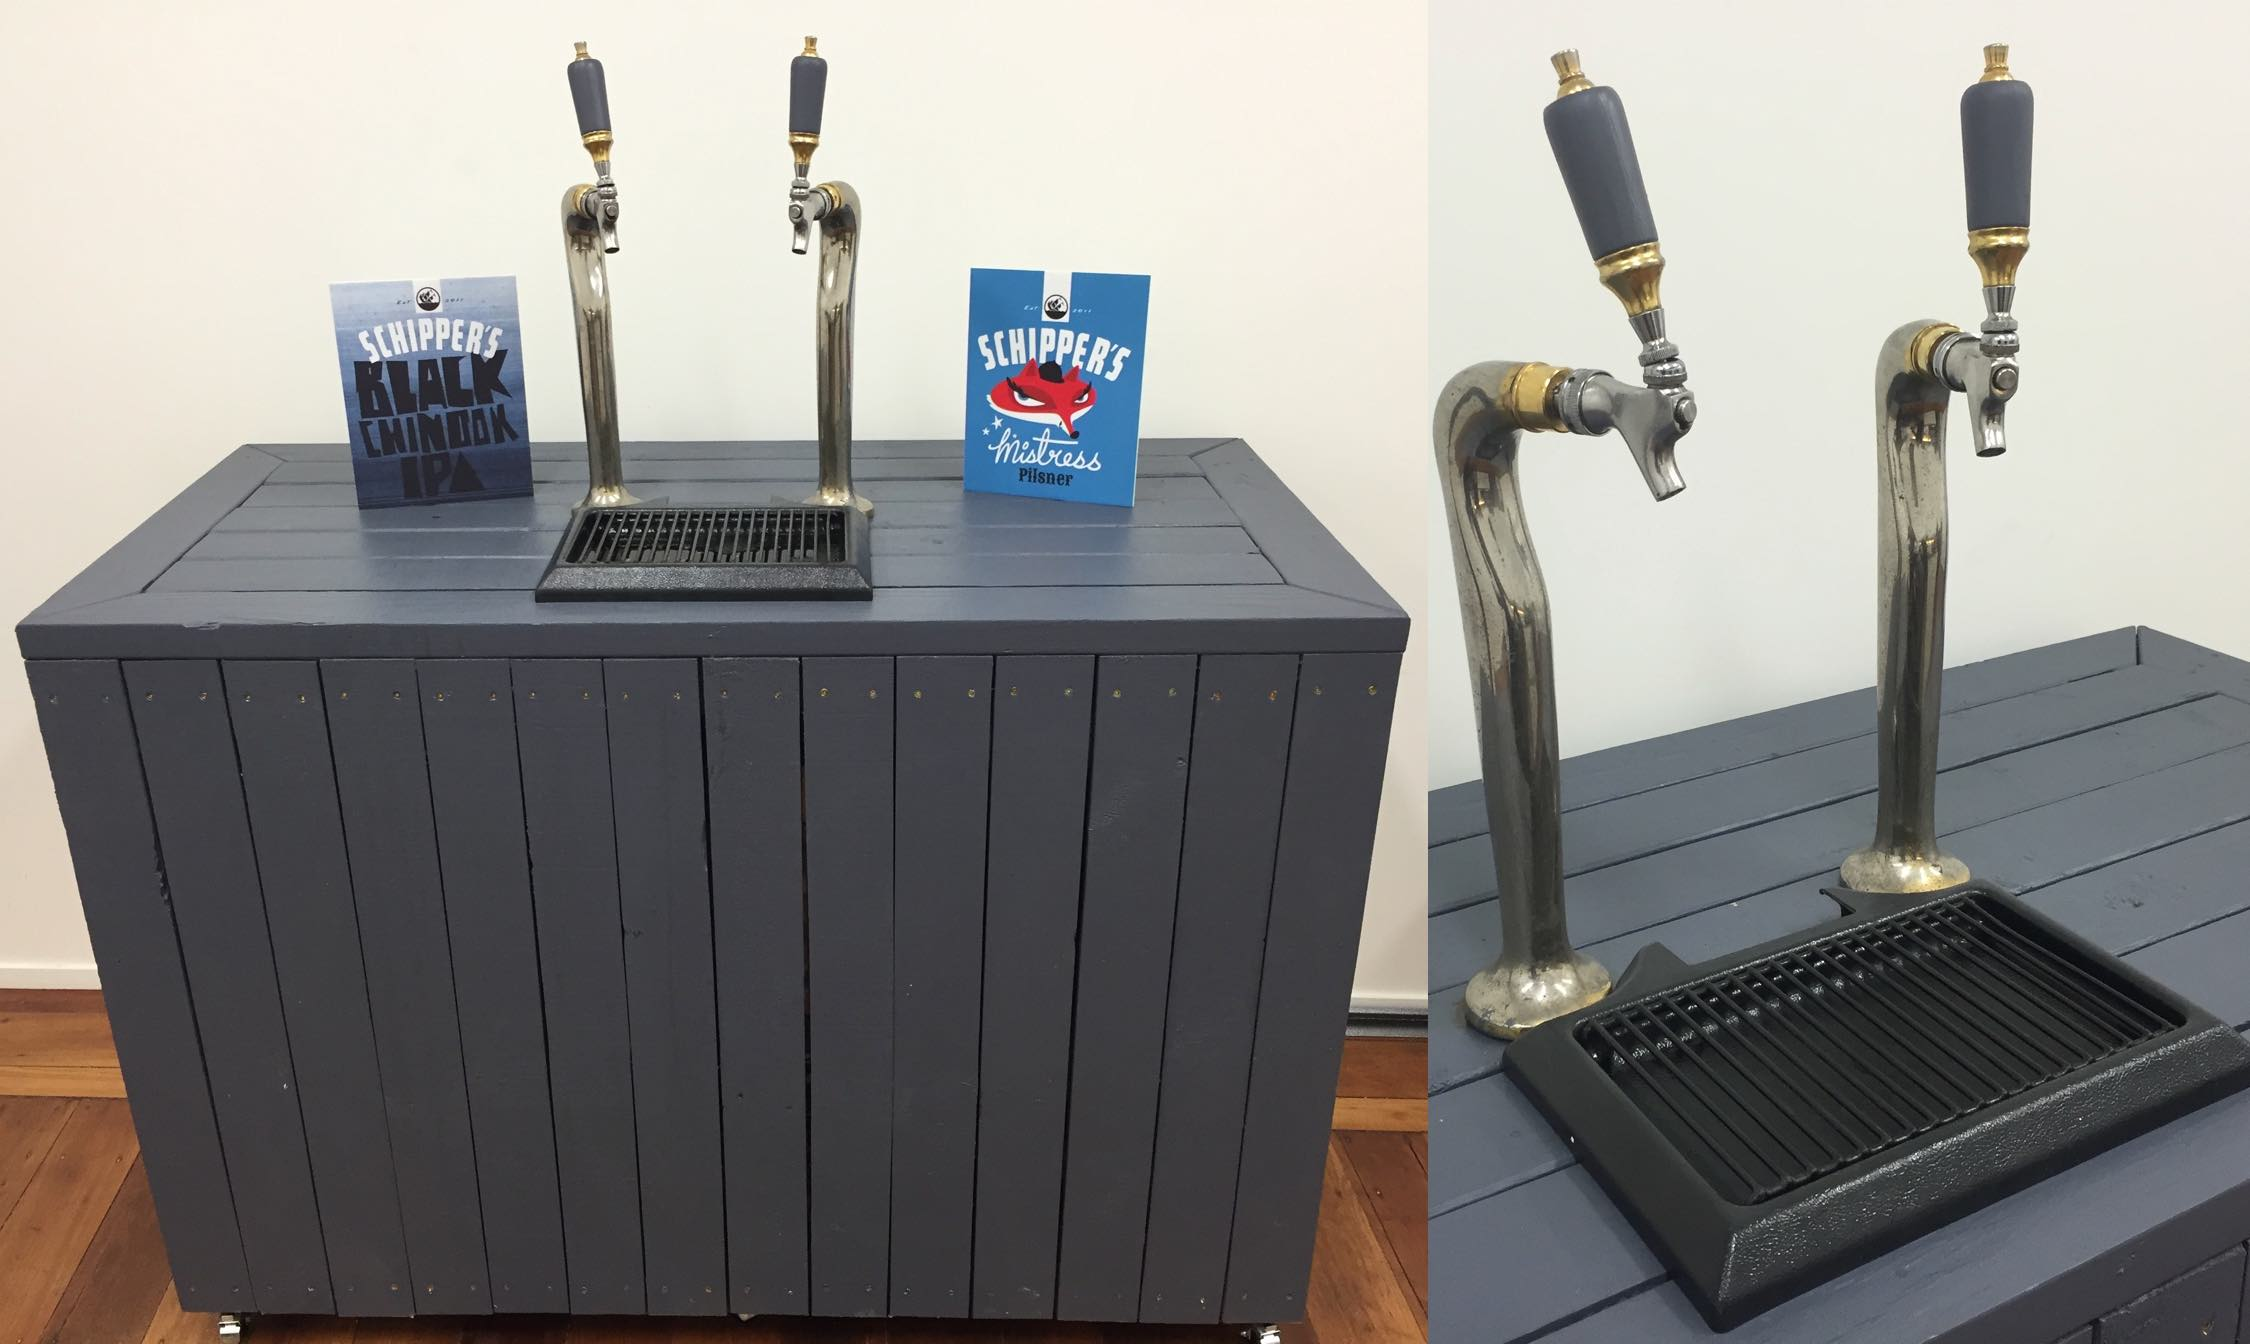 The beer tap setup which we were looking to replace